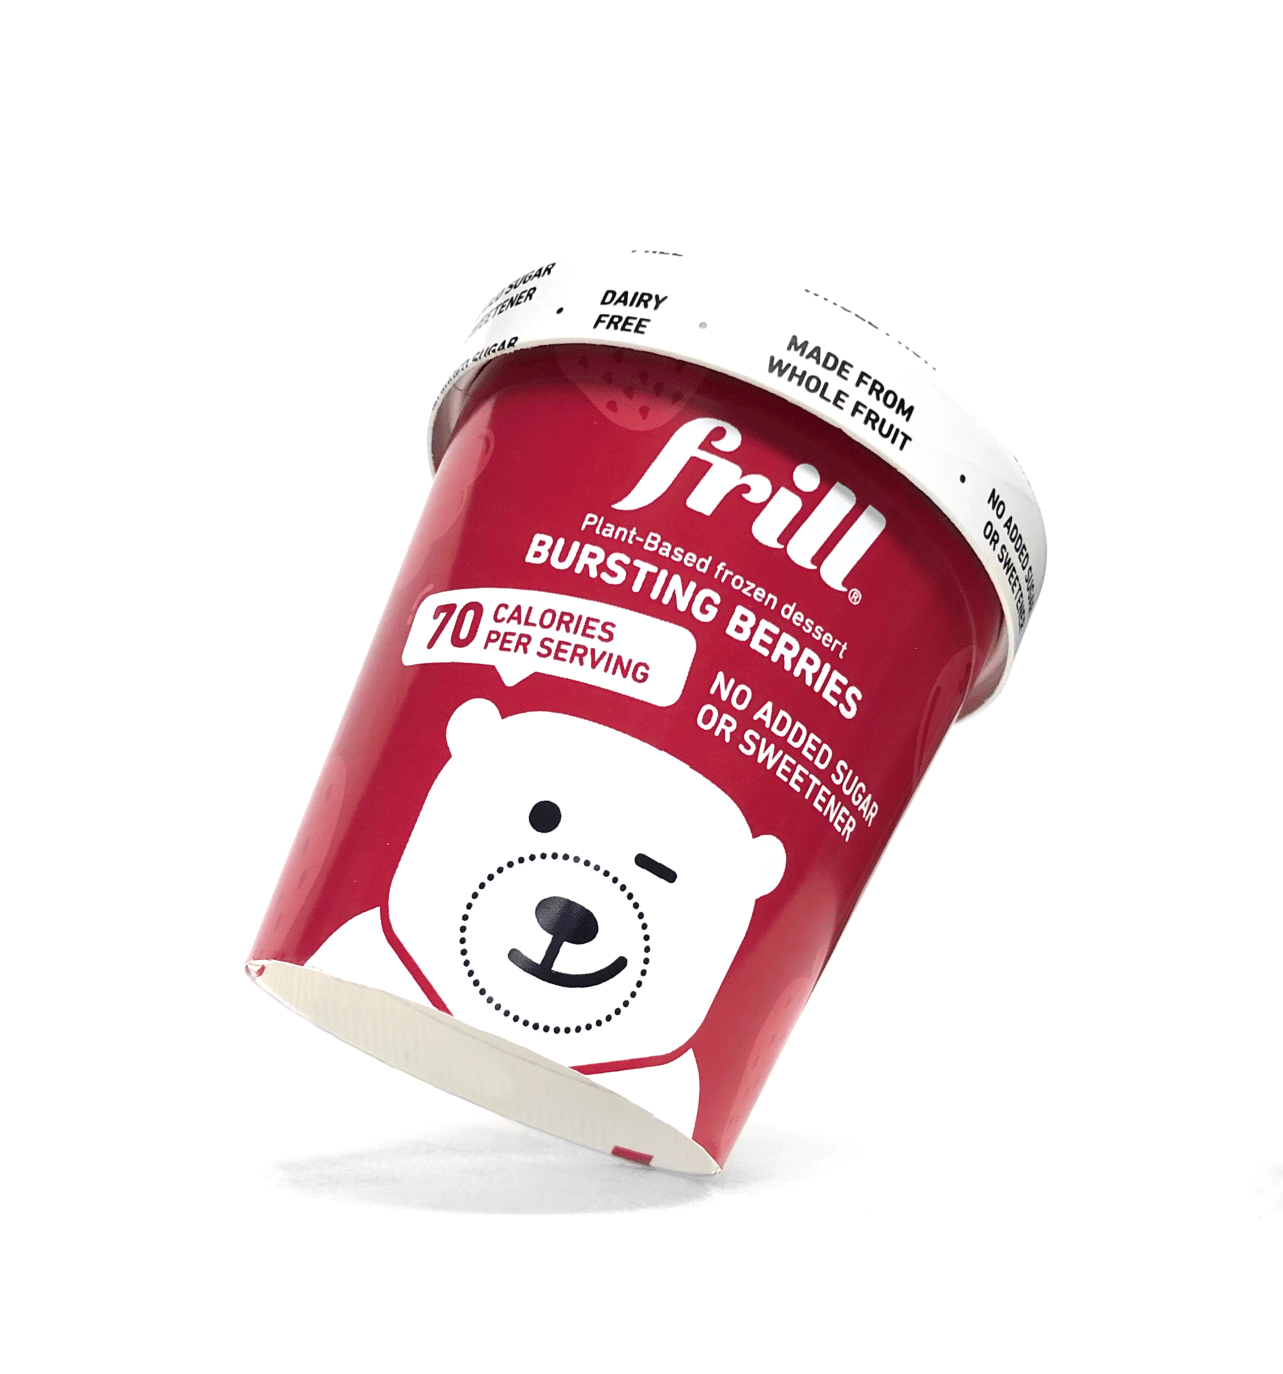 Frill Launches Fruit & Vegetable-Based Vegan Ice Cream